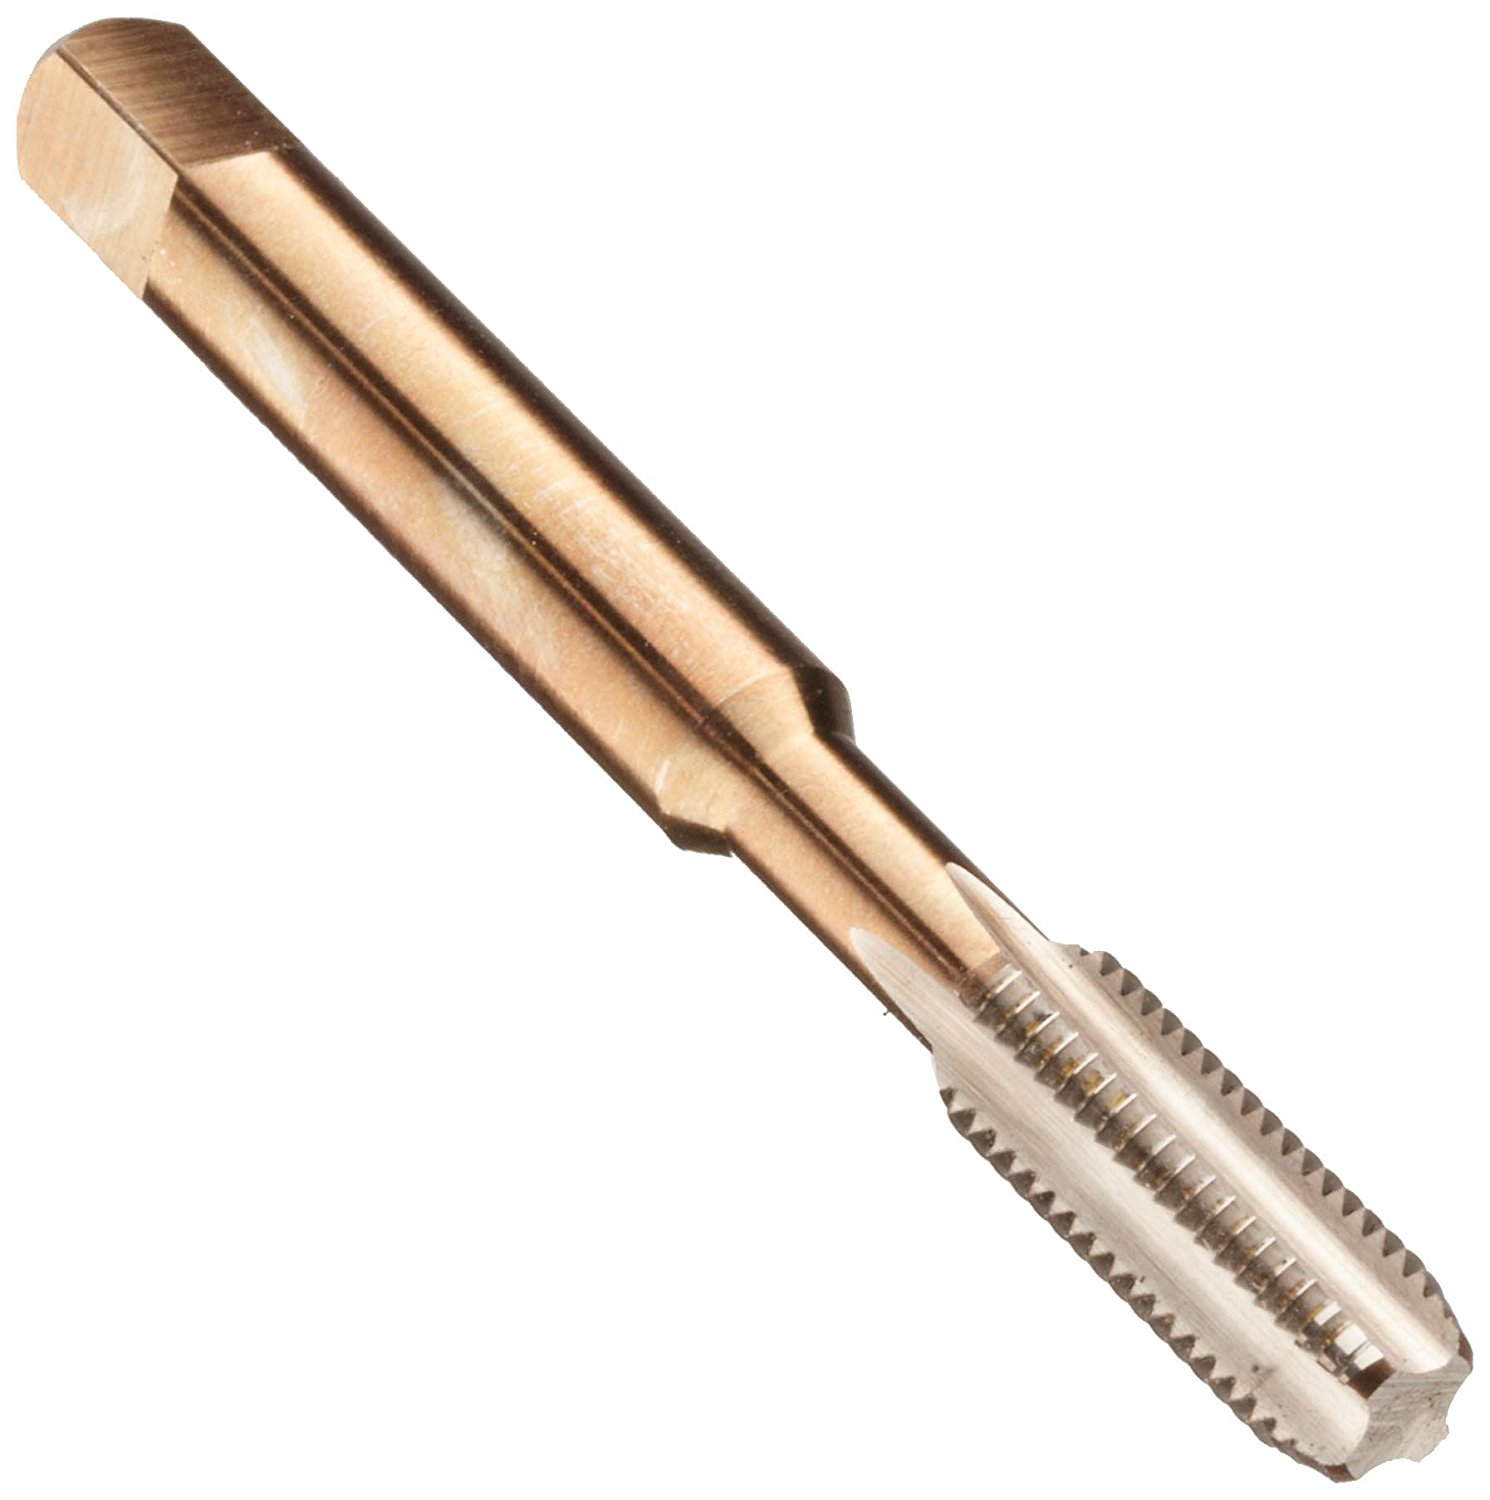 "Dormer E0715/16NO3 General Purpose Hand Taps, Bright Coating, Bottoming Chamfer Length, TPIUNF24, Full Length 2.23/32"", Nominal D 5/16, Flute Length 0.7700"", Shank Diameter 0.3180"""